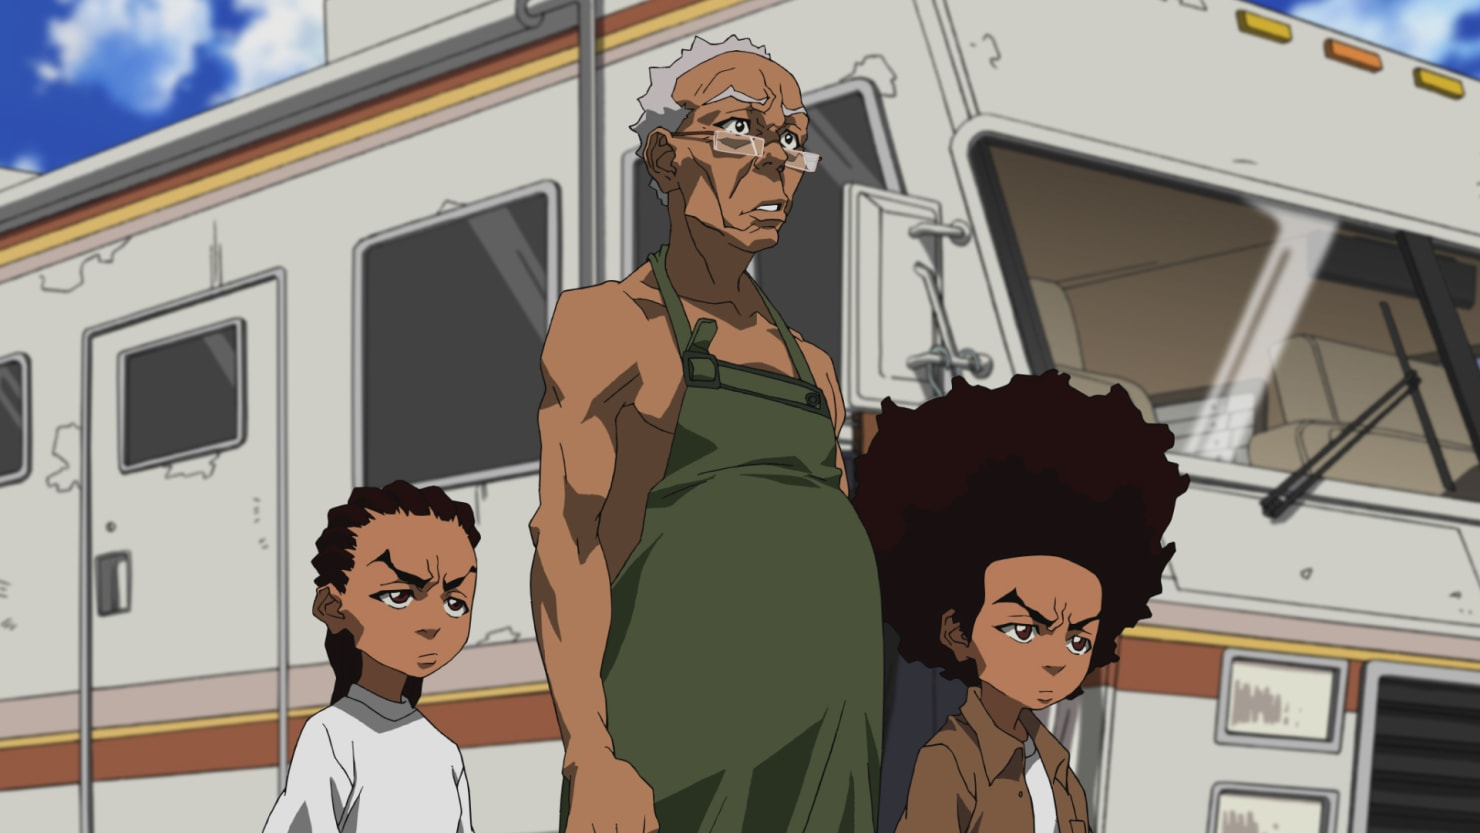 Remarkable, rather Boondocks and adult swim opinion